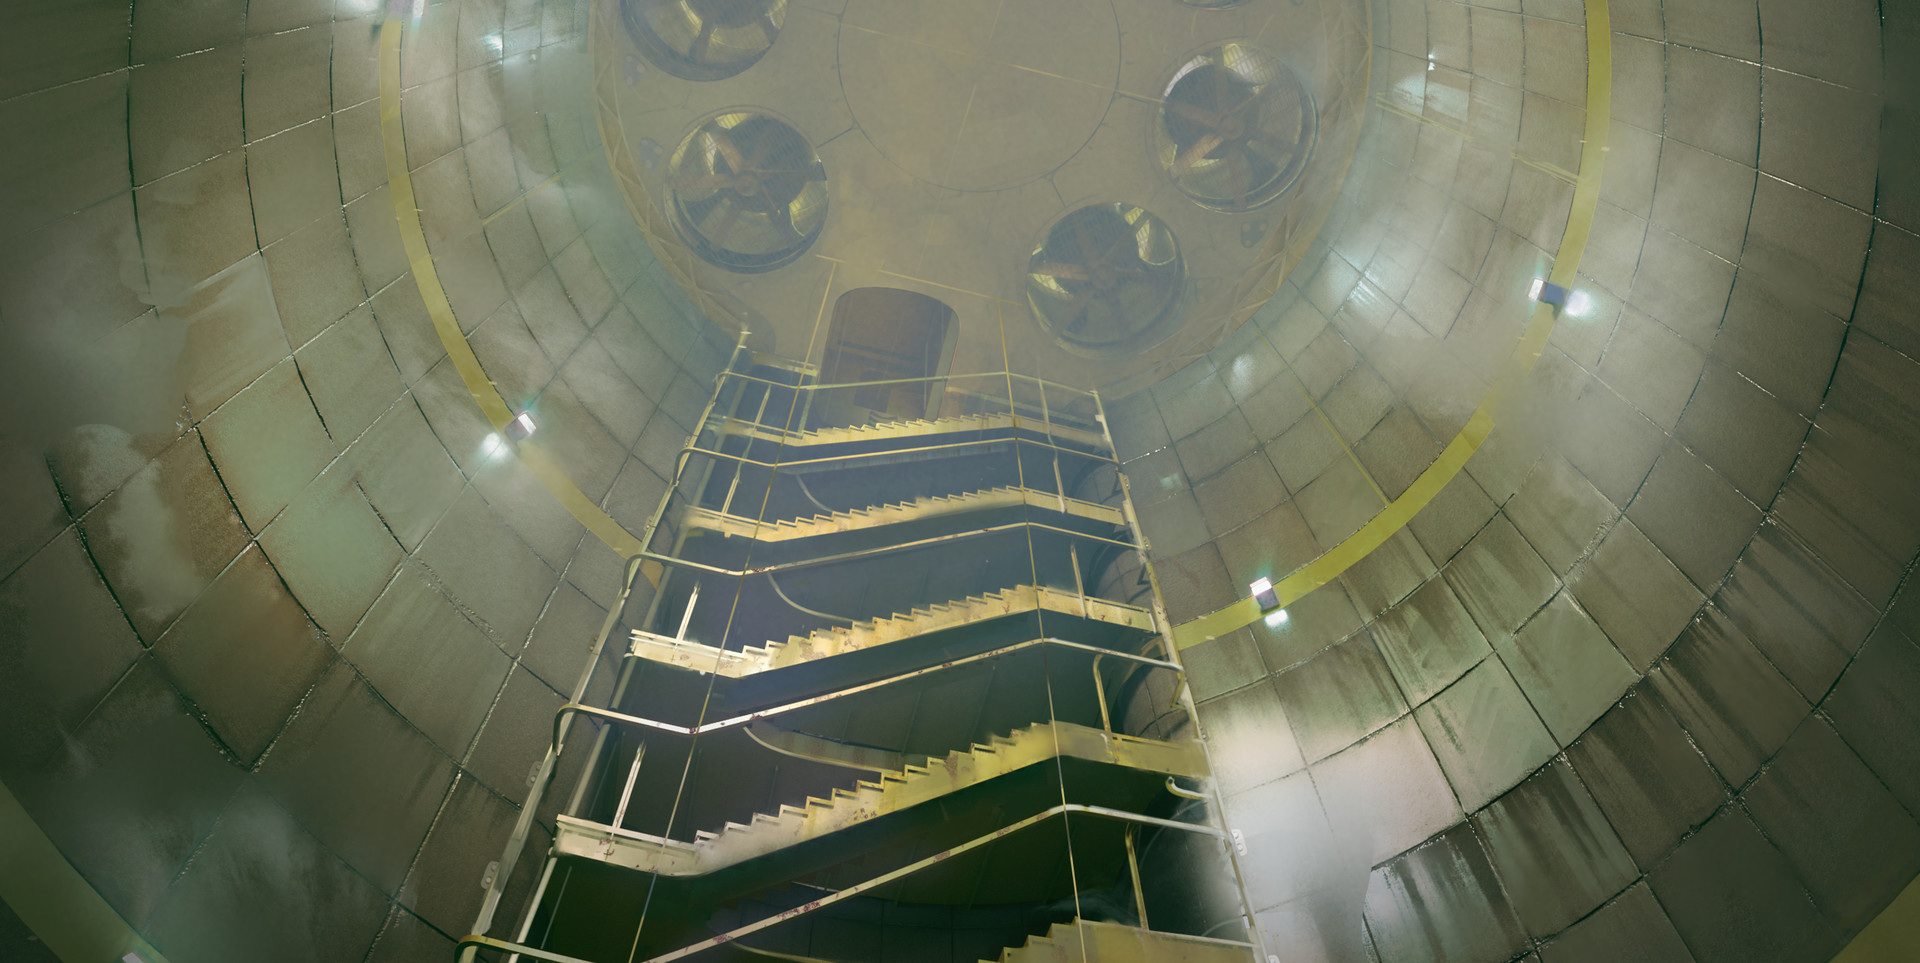 Descending the cooling tower